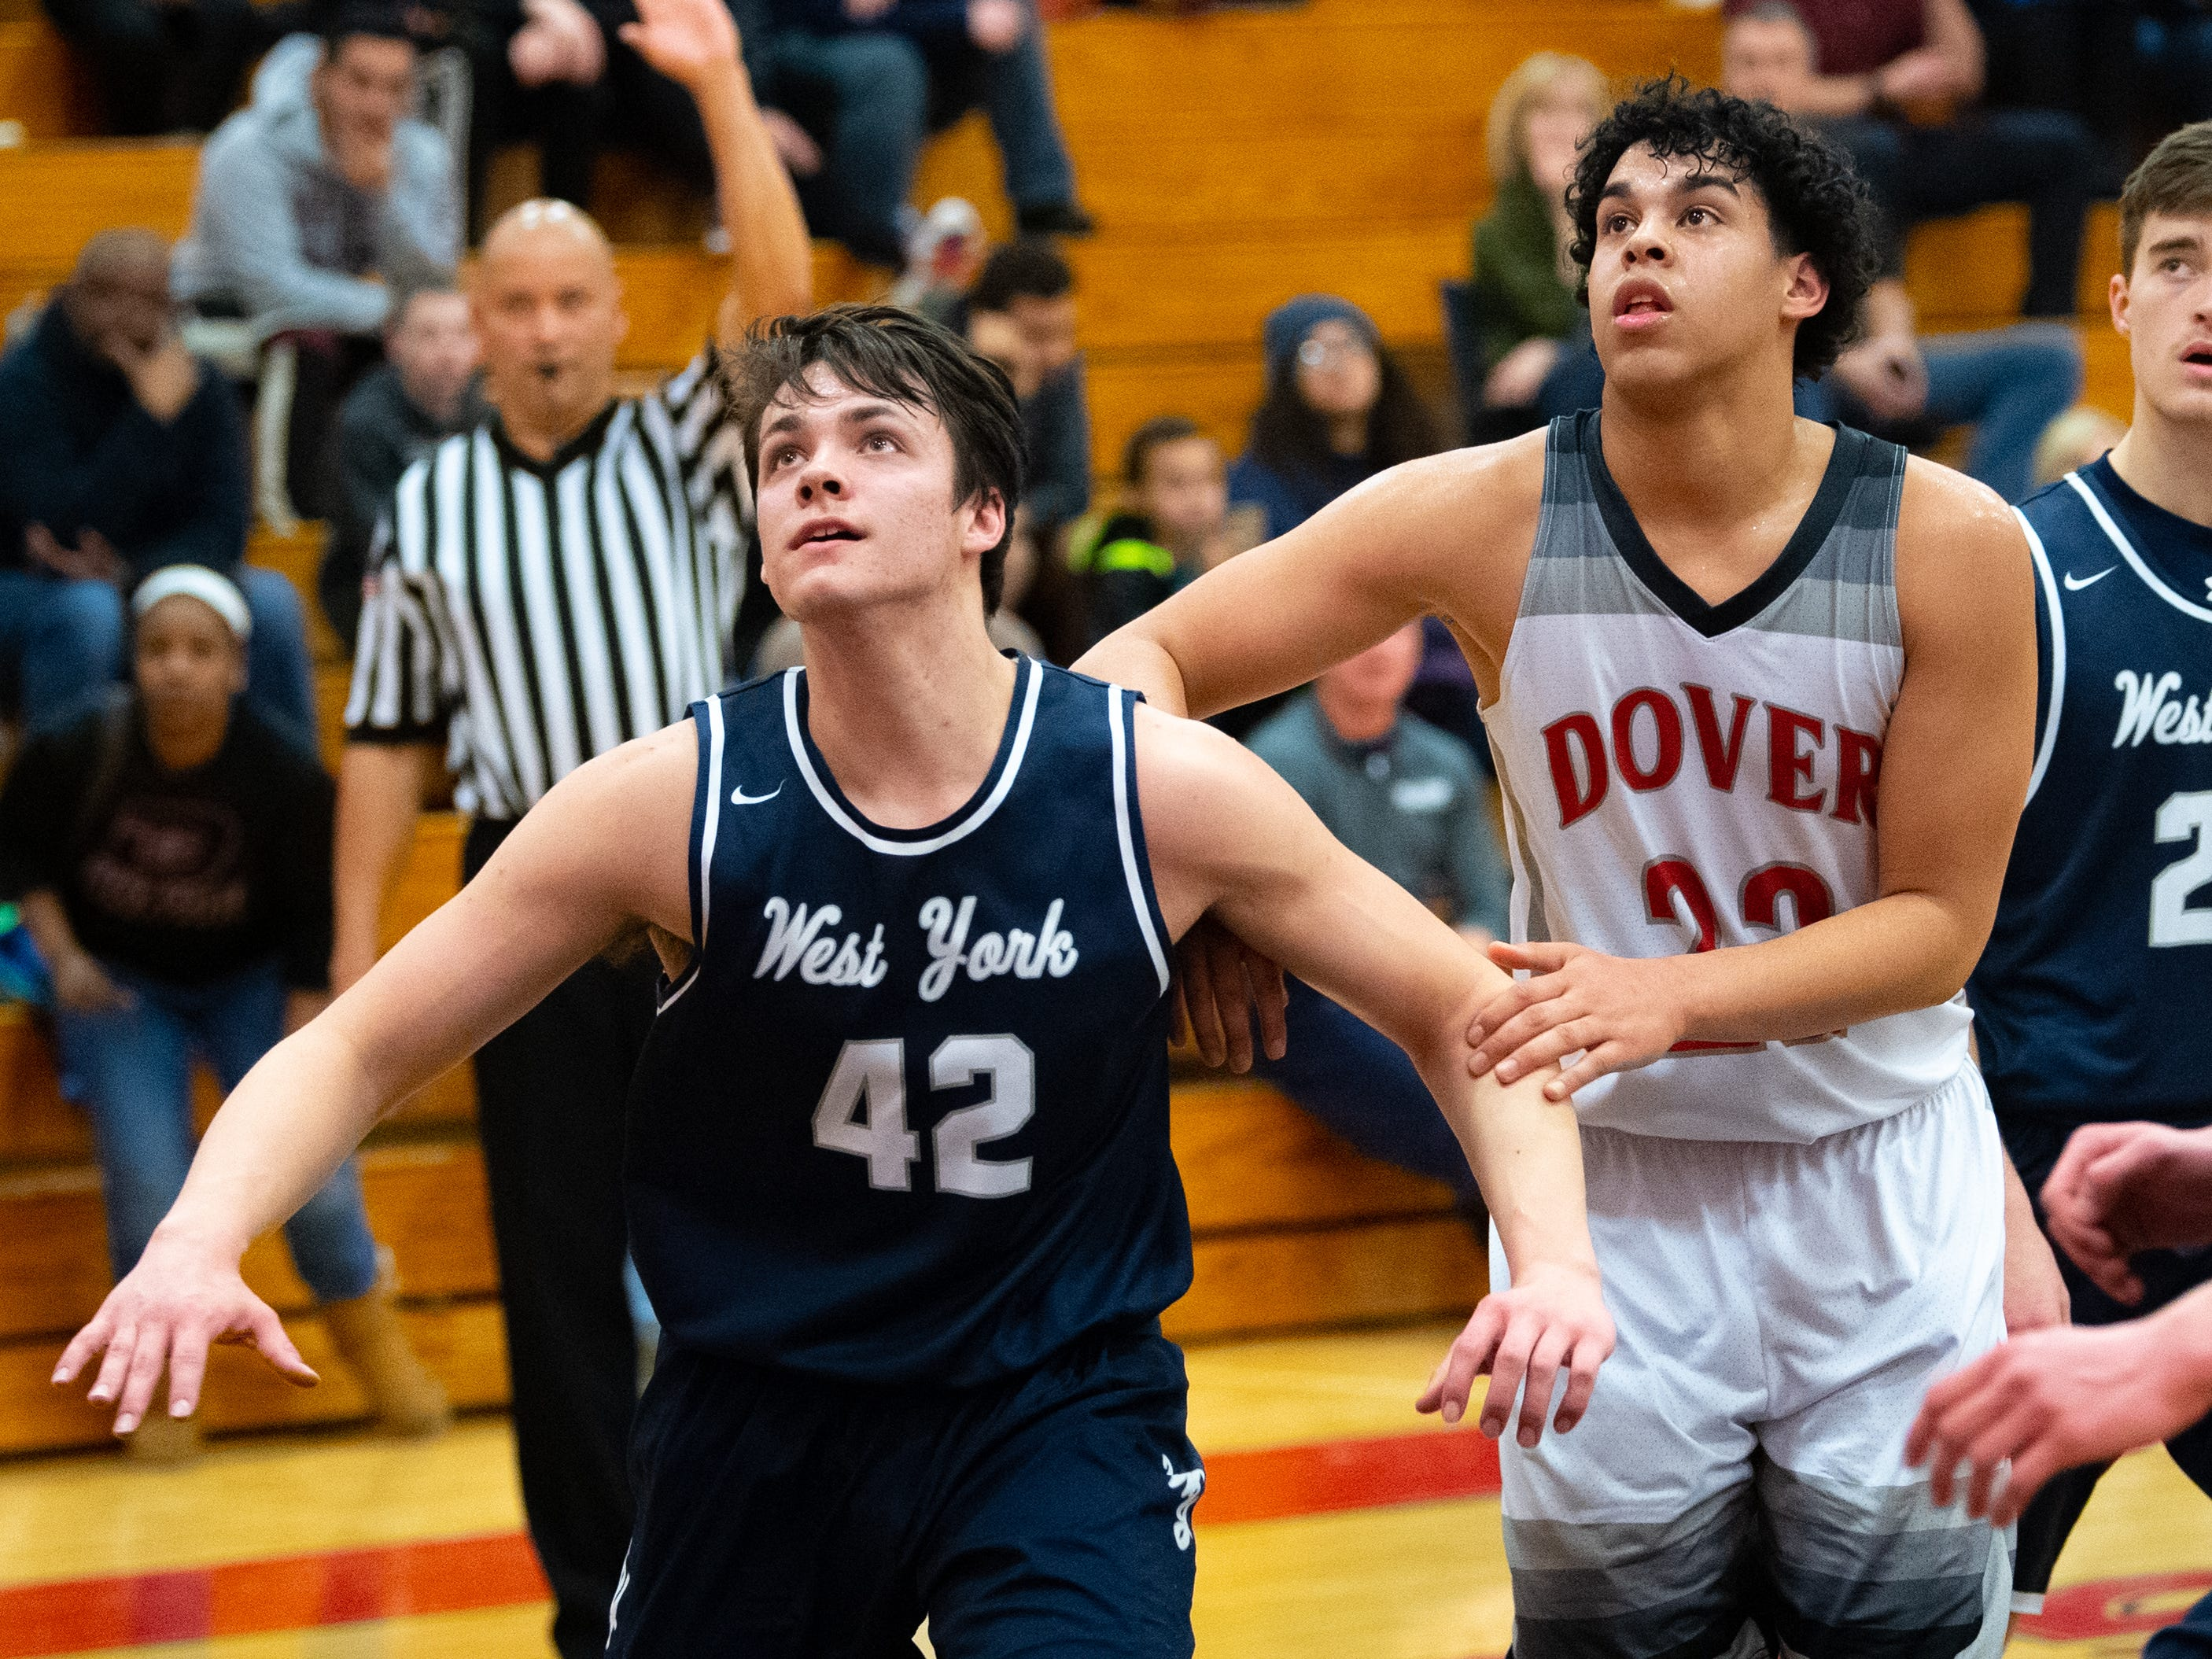 Gabe Mummert (42) of West York looks to grab the rebound during the boys' basketball game between Dover and West York, February 1, 2019. The Eagles defeated the Bulldogs 65 to 58.